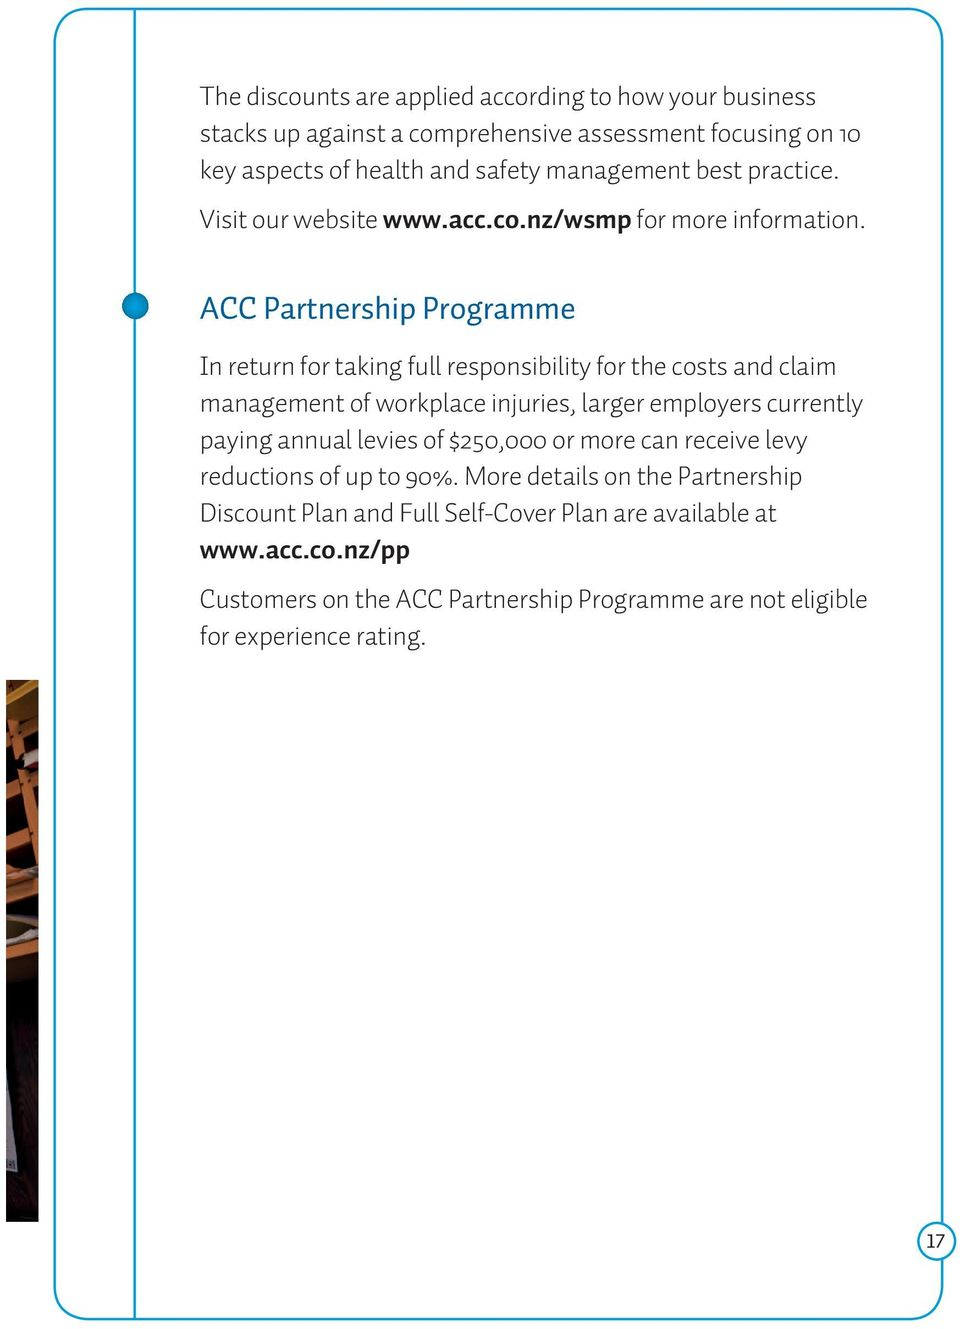 ACC Partnership Programme In return for taking full responsibility for the costs and claim management of workplace injuries, larger employers currently paying